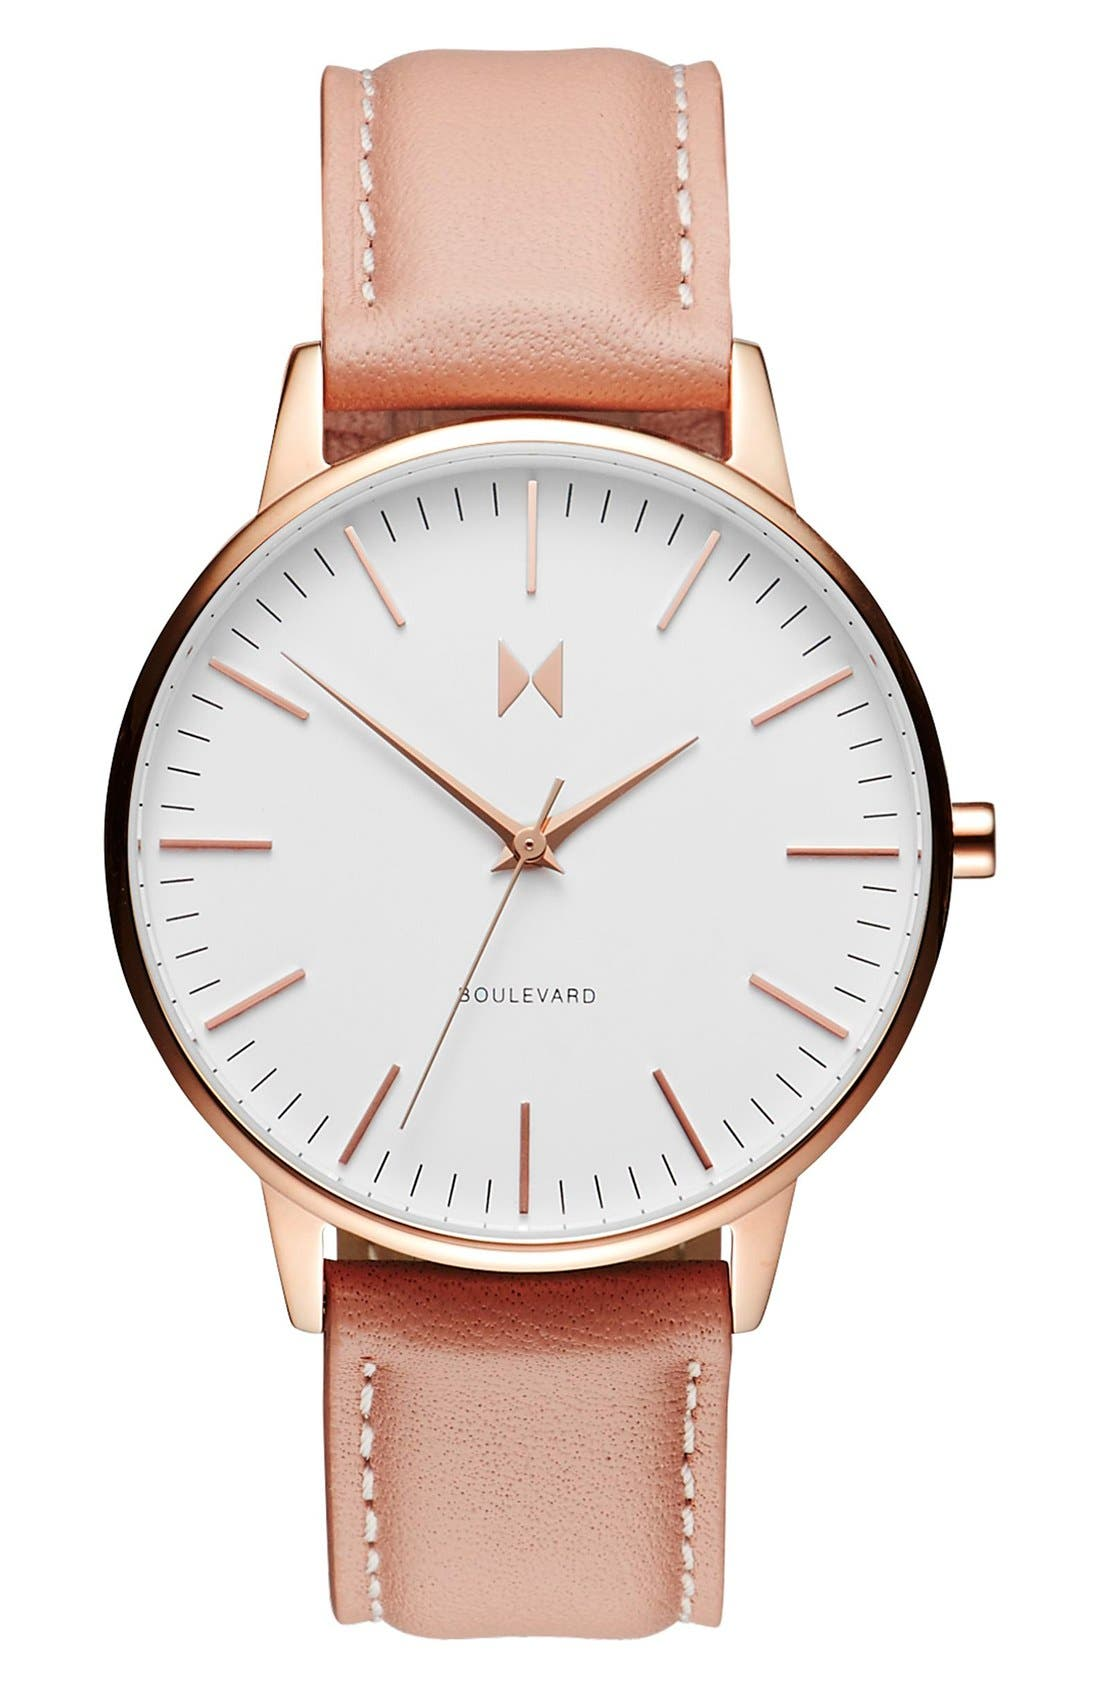 Boulevard Leather Strap Watch, 38mm,                             Main thumbnail 1, color,                             PEACH/ WHITE/ ROSE GOLD